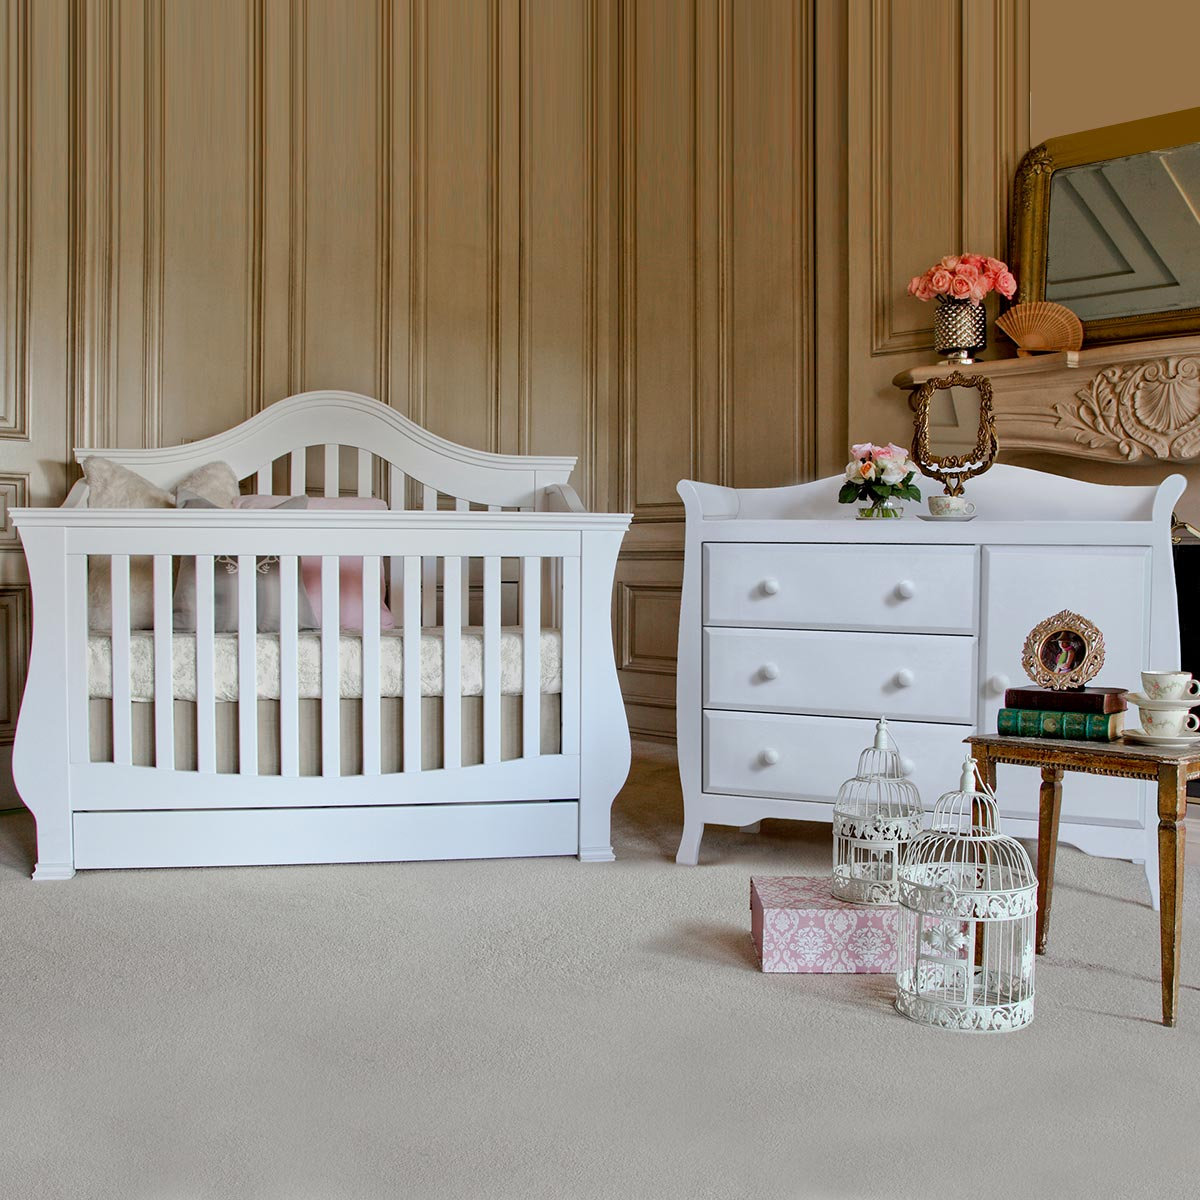 Million Dollar Baby 2 Piece Nursery Set Ashbury 4 In 1 Sleigh